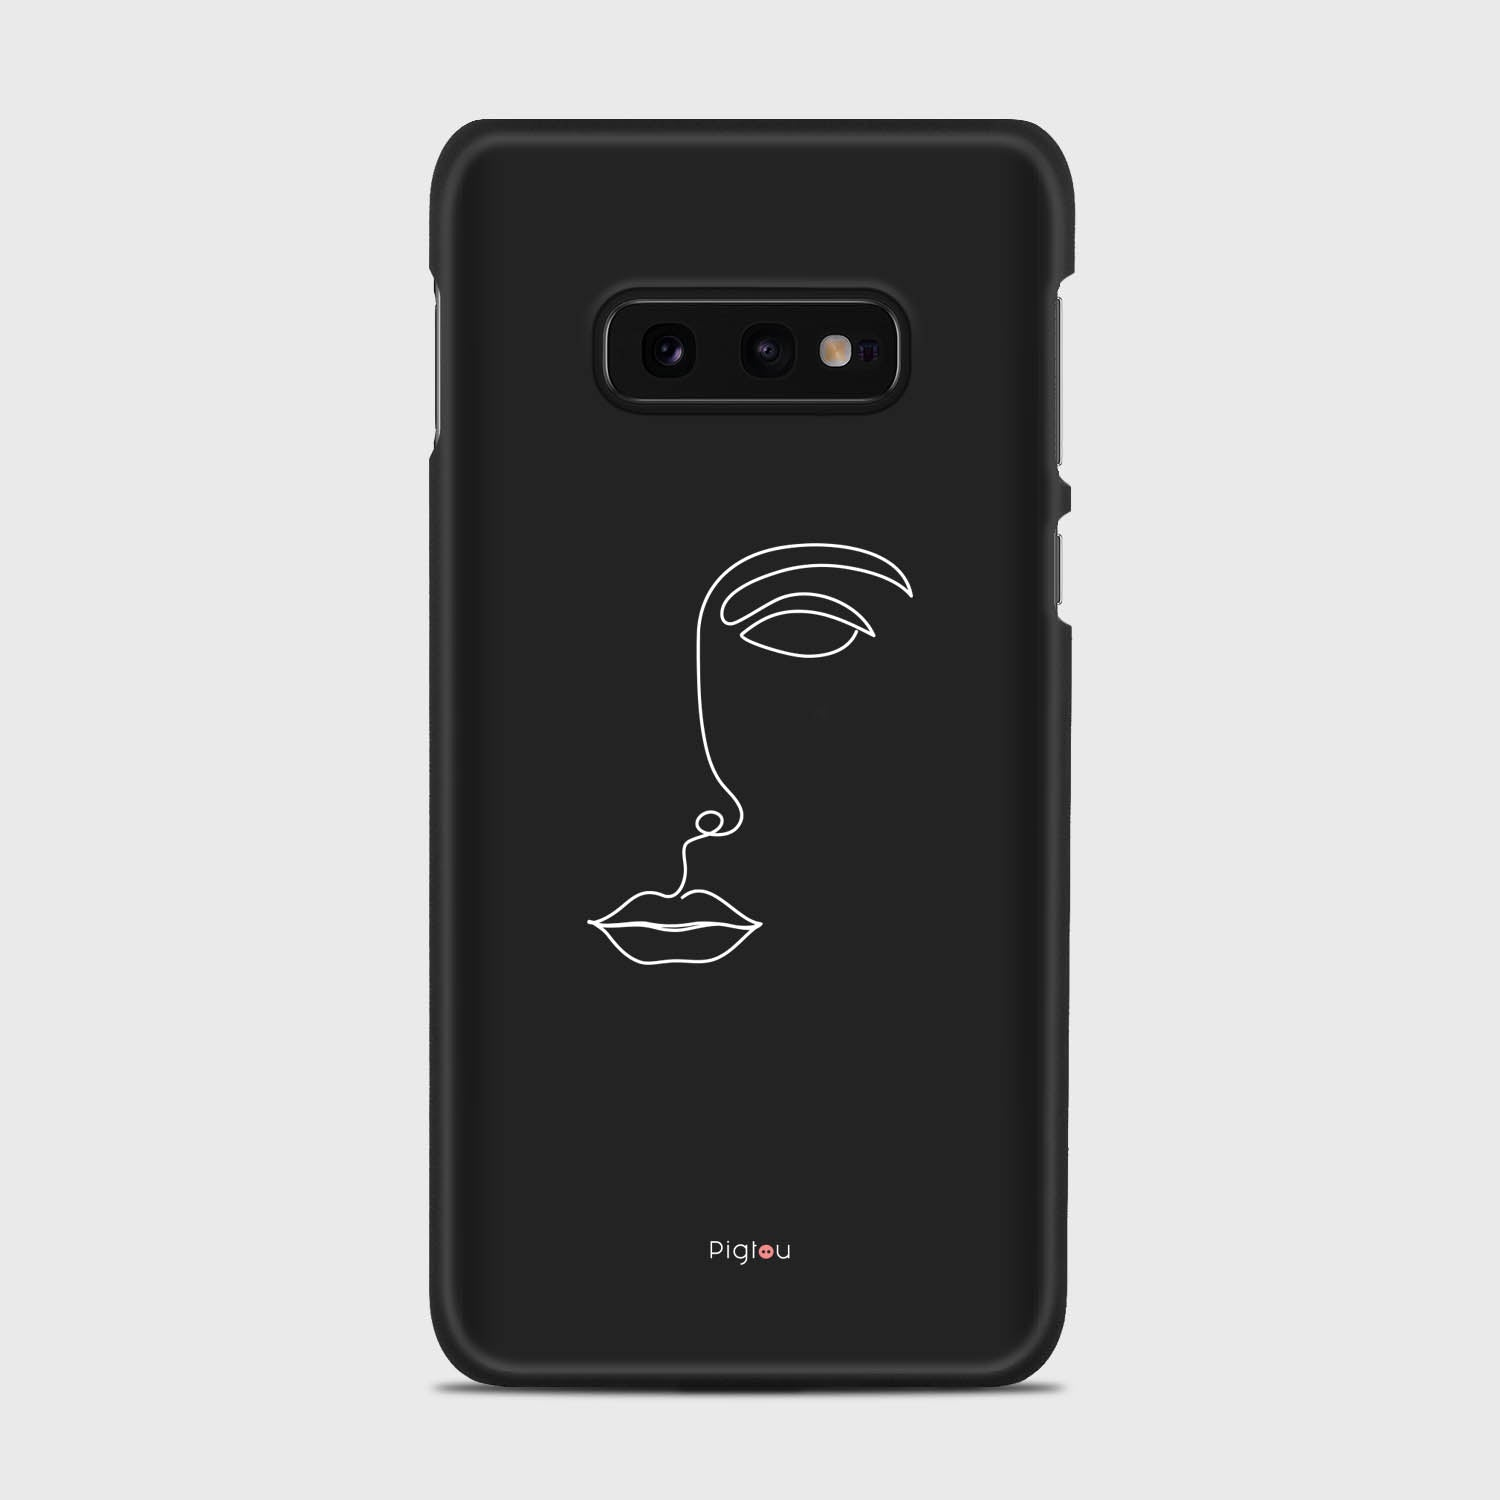 SILHOUETTE FACE Samsung Galaxy S10e cases | Pigtou